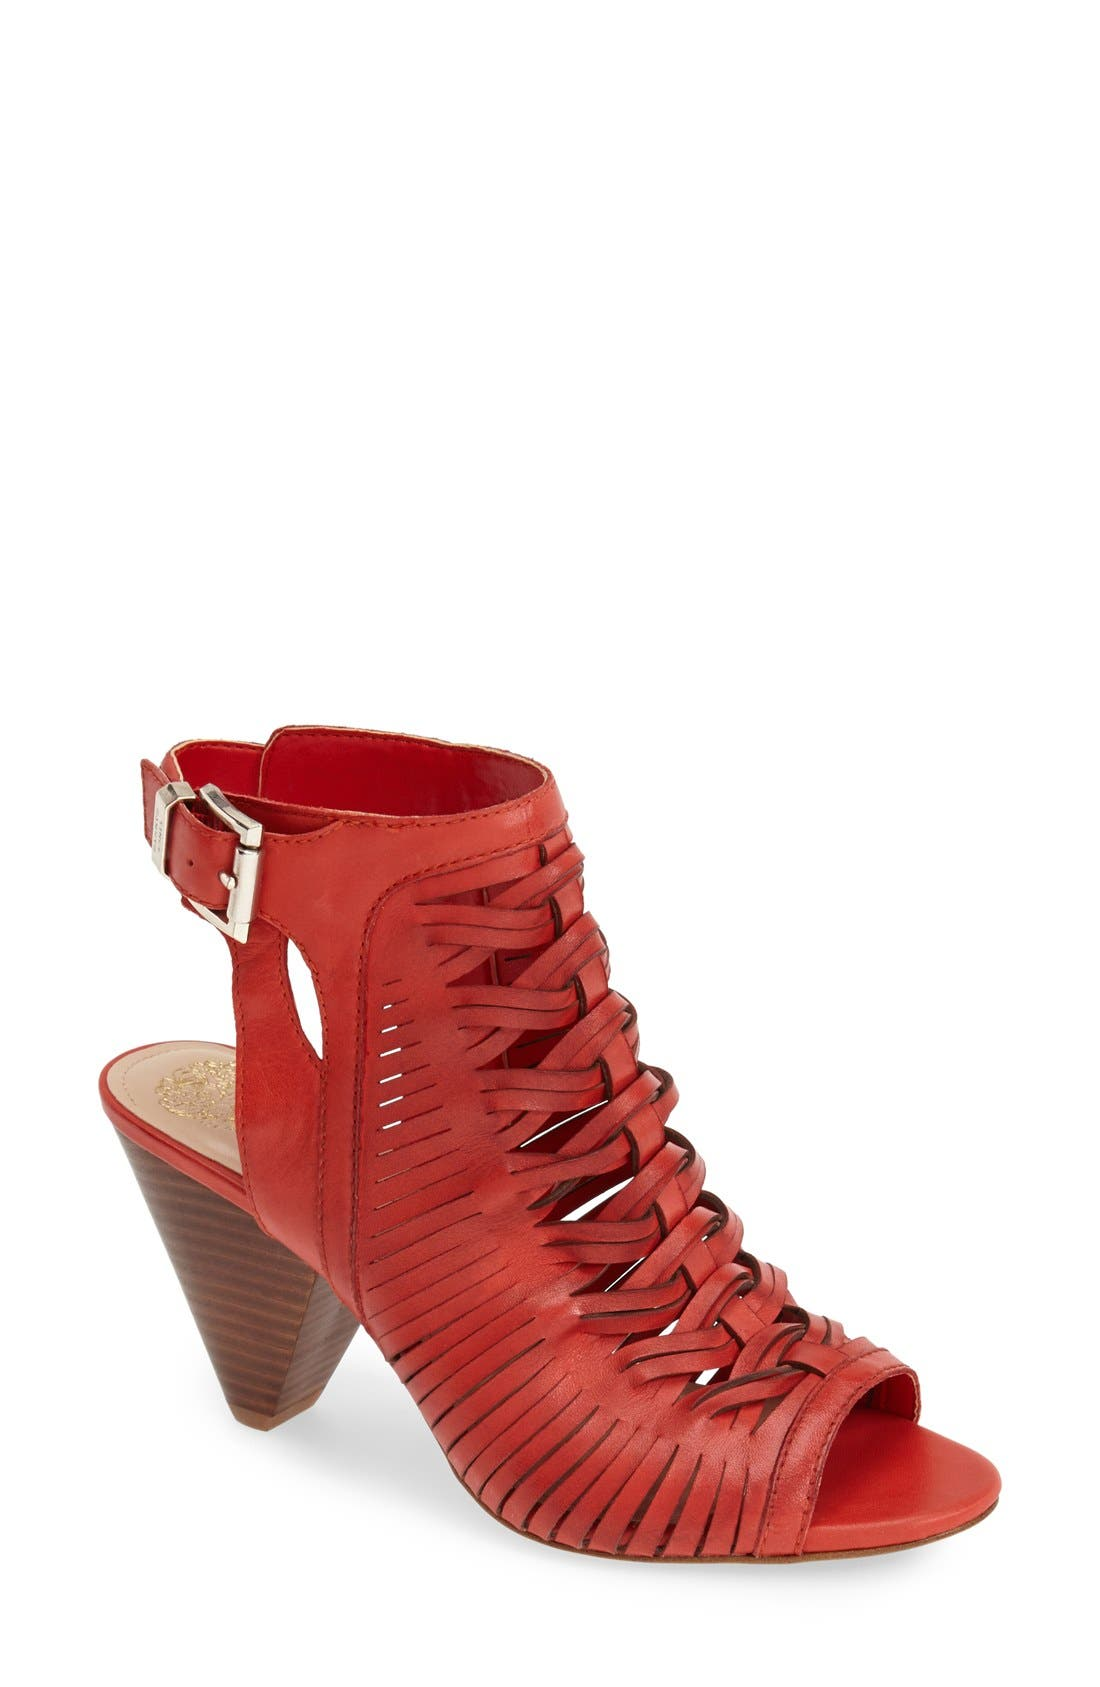 Alternate Image 1 Selected - Vince Camuto 'Emore' Leather Sandal (Women) (Nordstrom Exclusive)